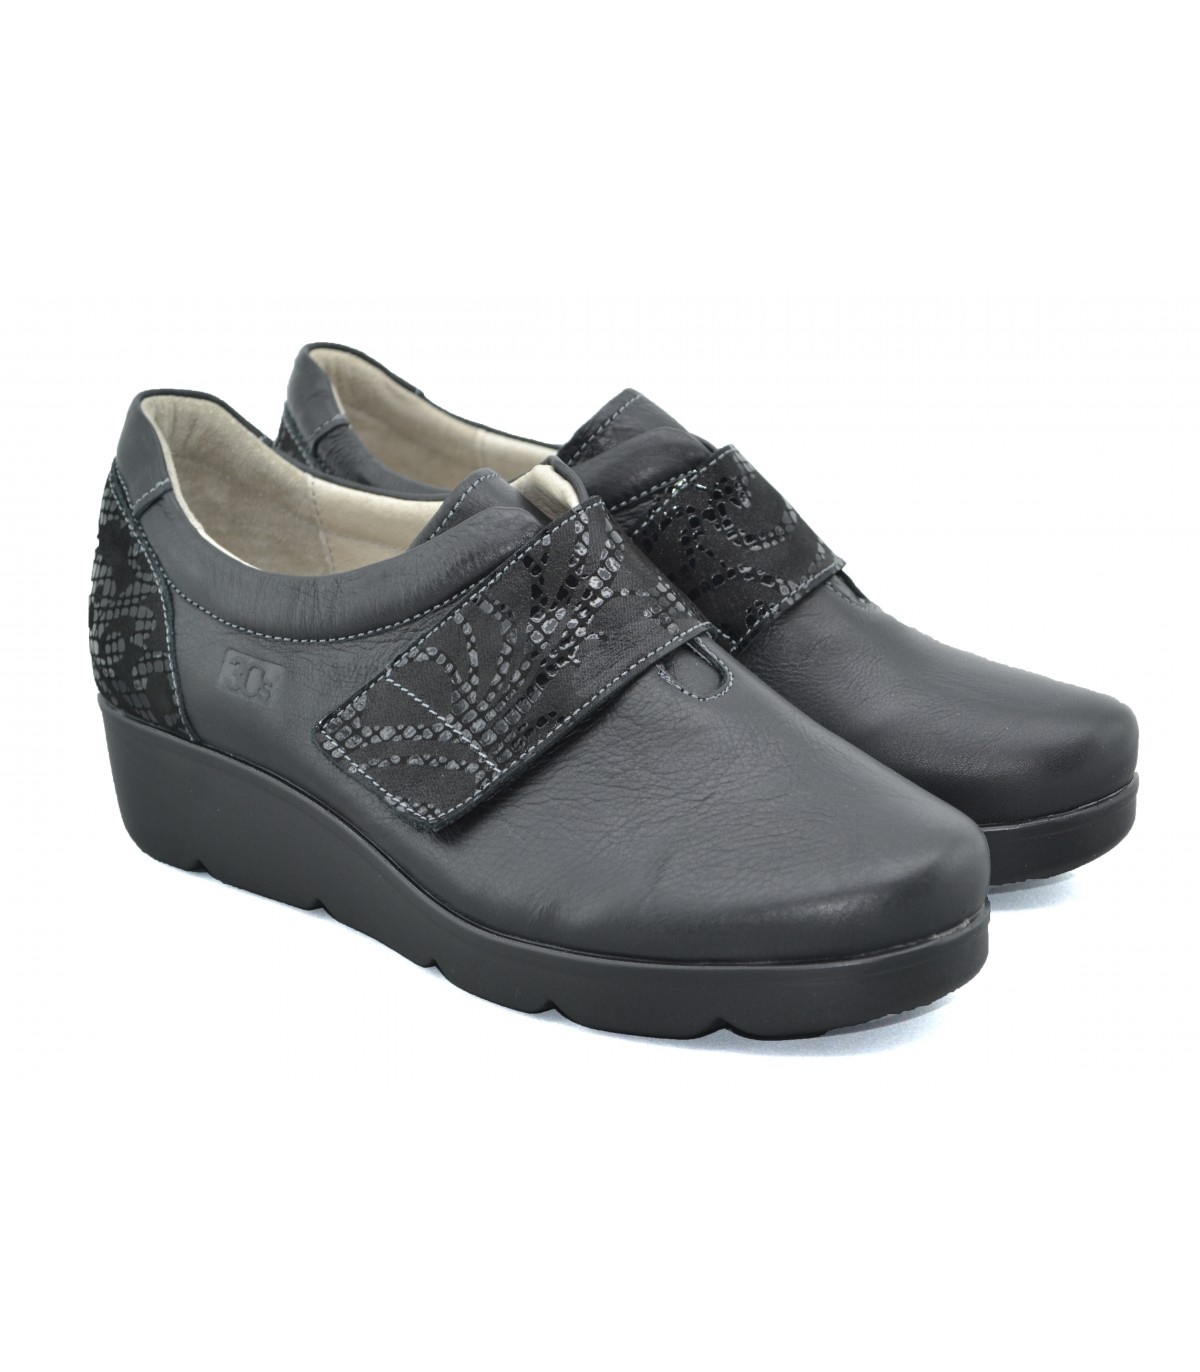 zapatos confort mujer